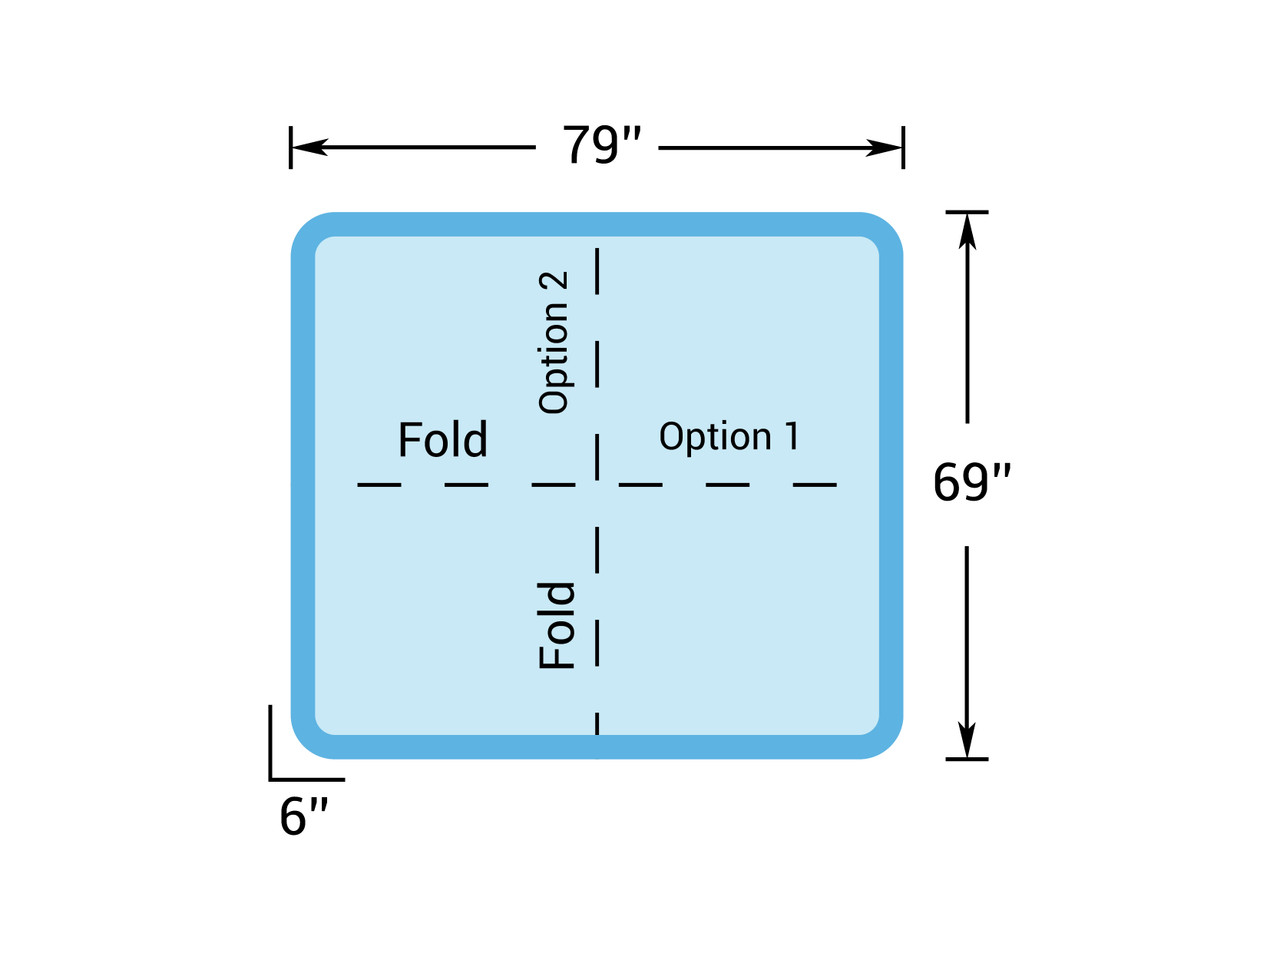 """6' 7"""" x 5' 9"""" Hot Tub Cover for Getaway Hot Tubs (79"""" x 69"""")"""